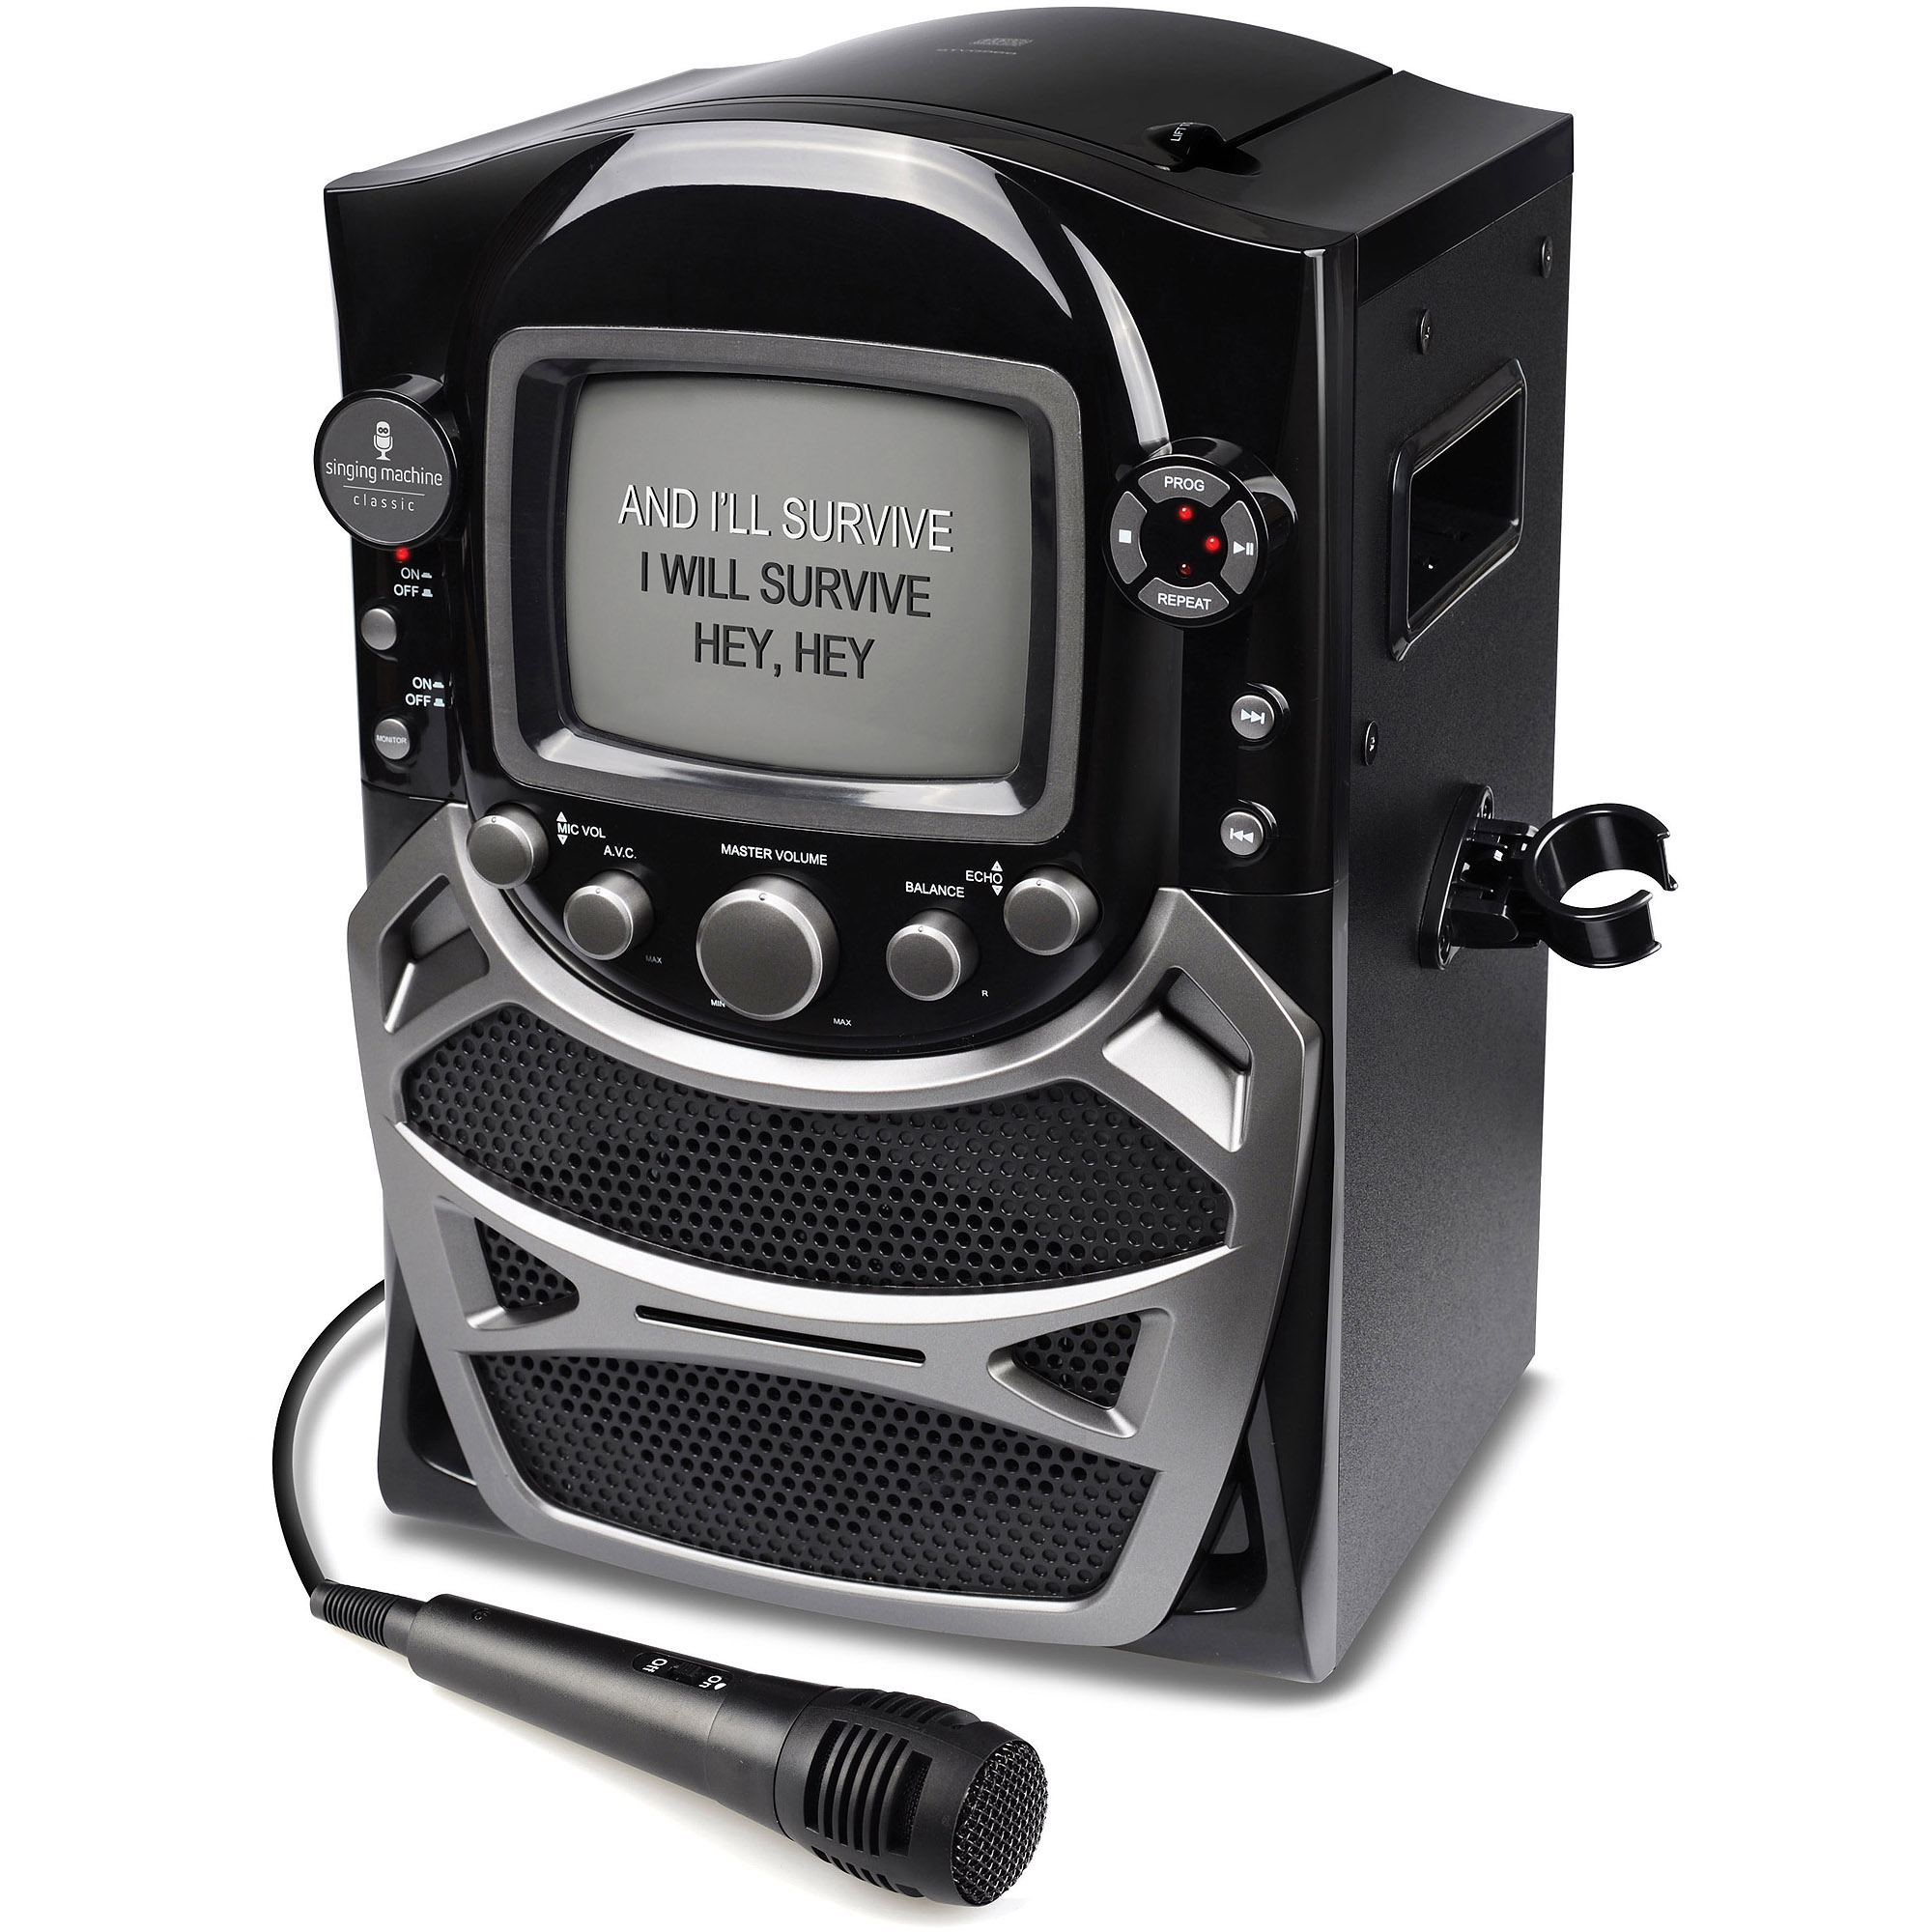 "Singing Machine CD G Karaoke System with Built-in 5.5"" B&W CRT Monitor and Microphone"